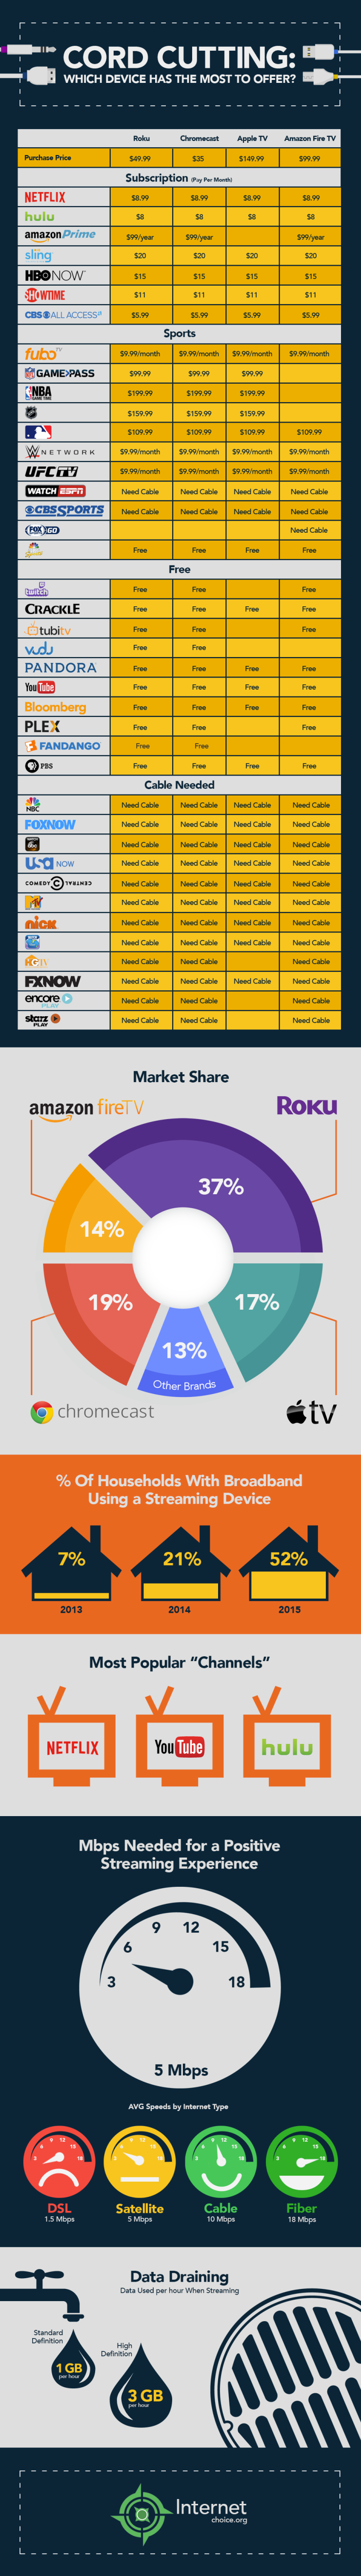 cord-cutting-infographic